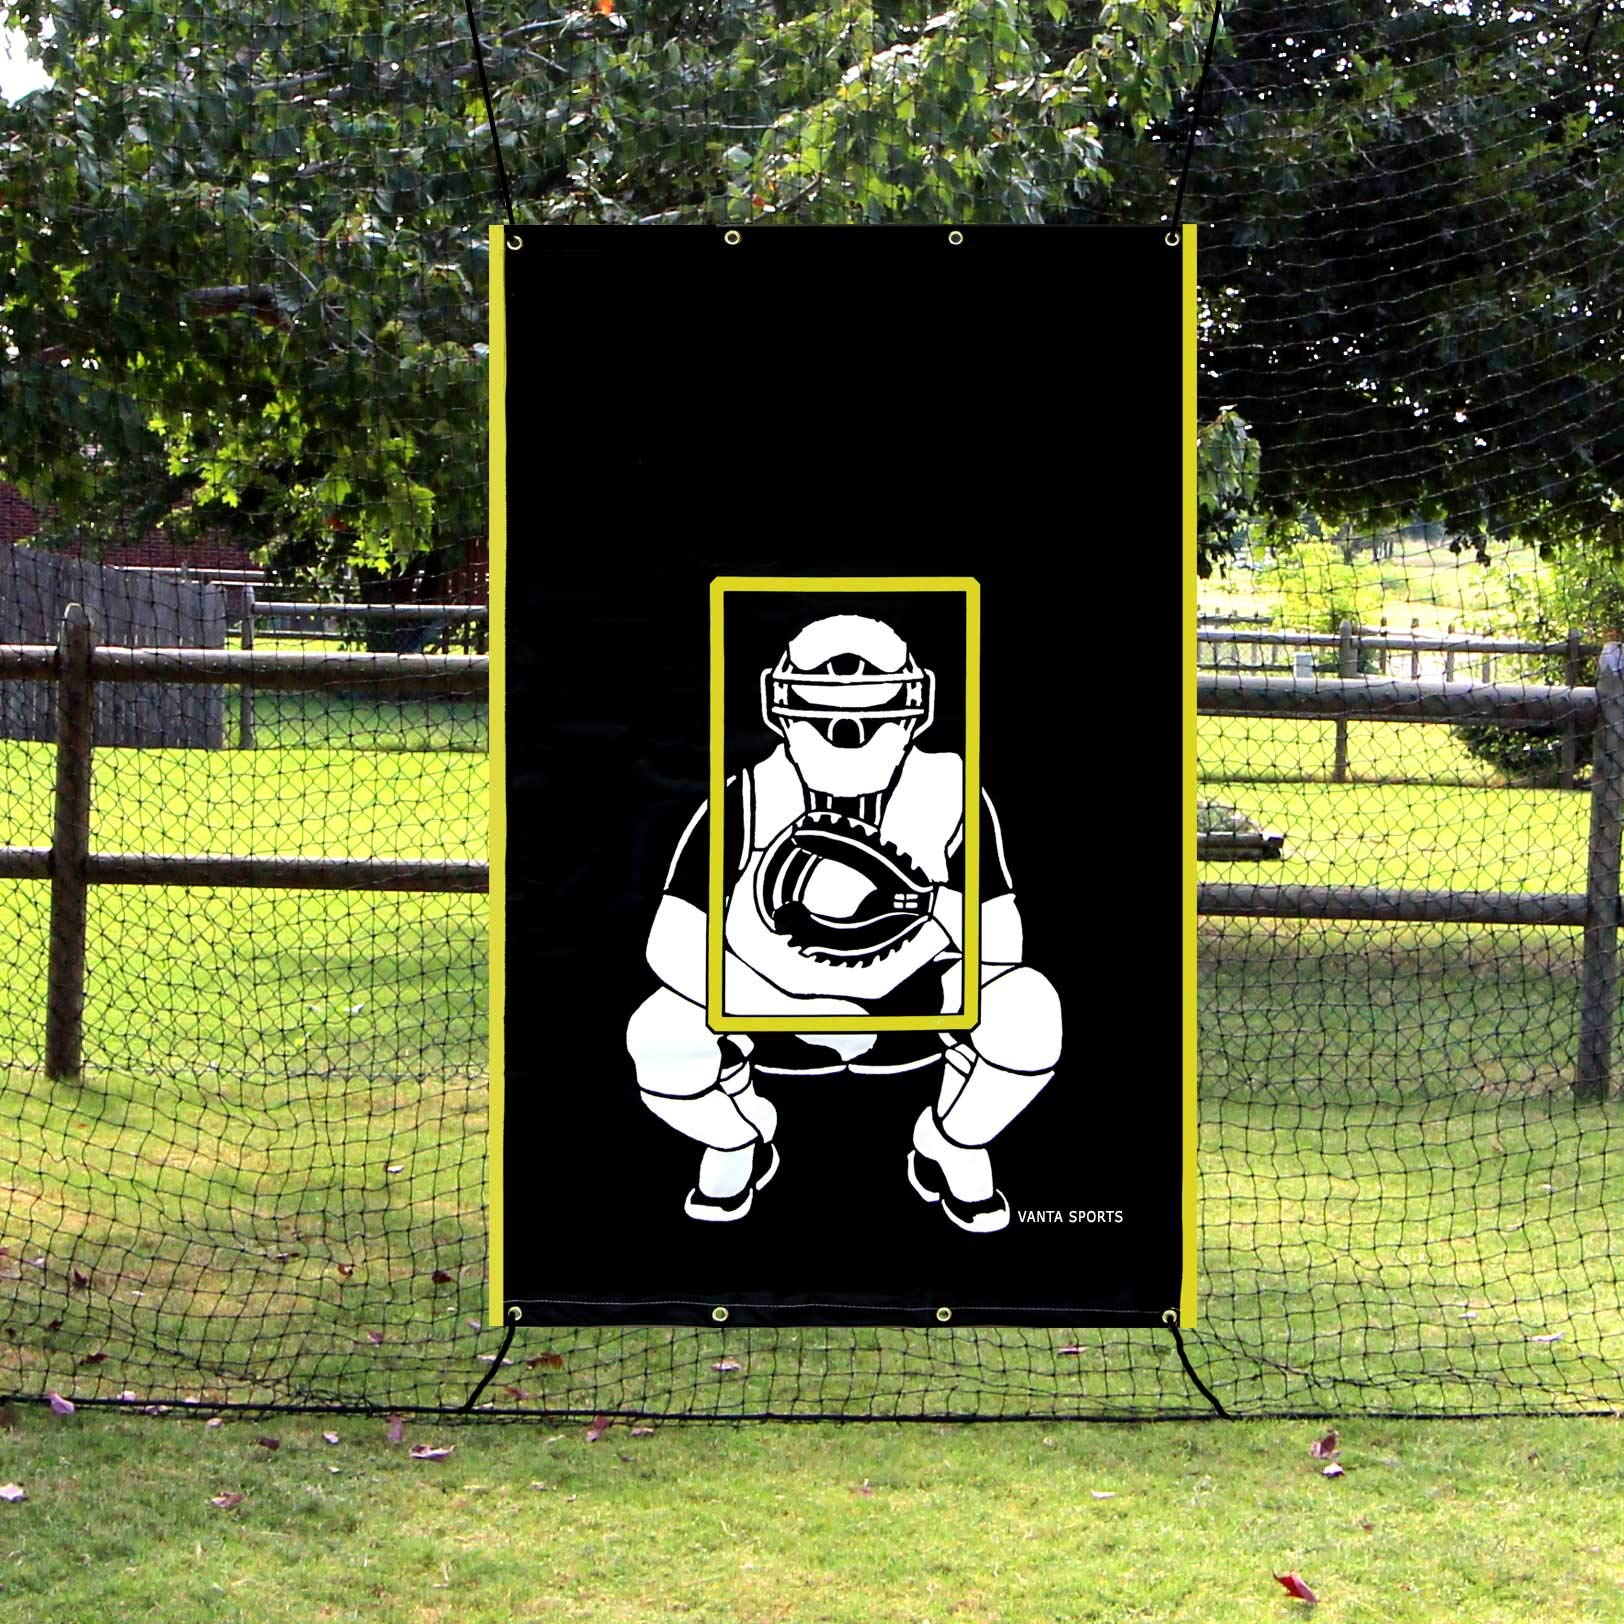 Vanta Sports Baseball Softball Heavy Vinyl 4x6 Backstop Net Saver with Catcher Image and Pitching Zone Target Trainer by Vanta Sports